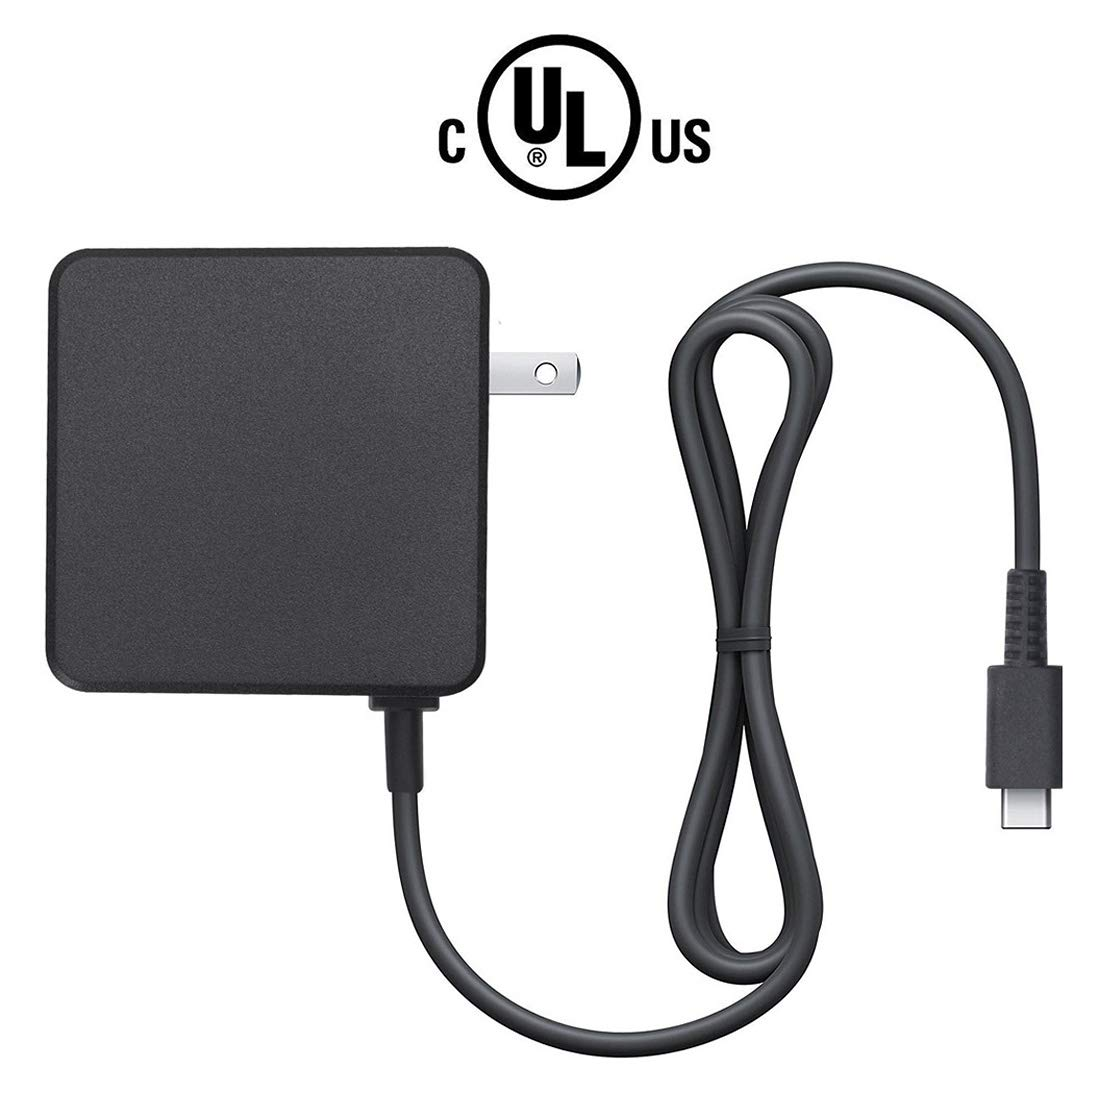 Amazon Basics Dual Voltage USB Type-C to AC Power Adapter Charger for Nintendo Switch - 6 Foot Cable, Black